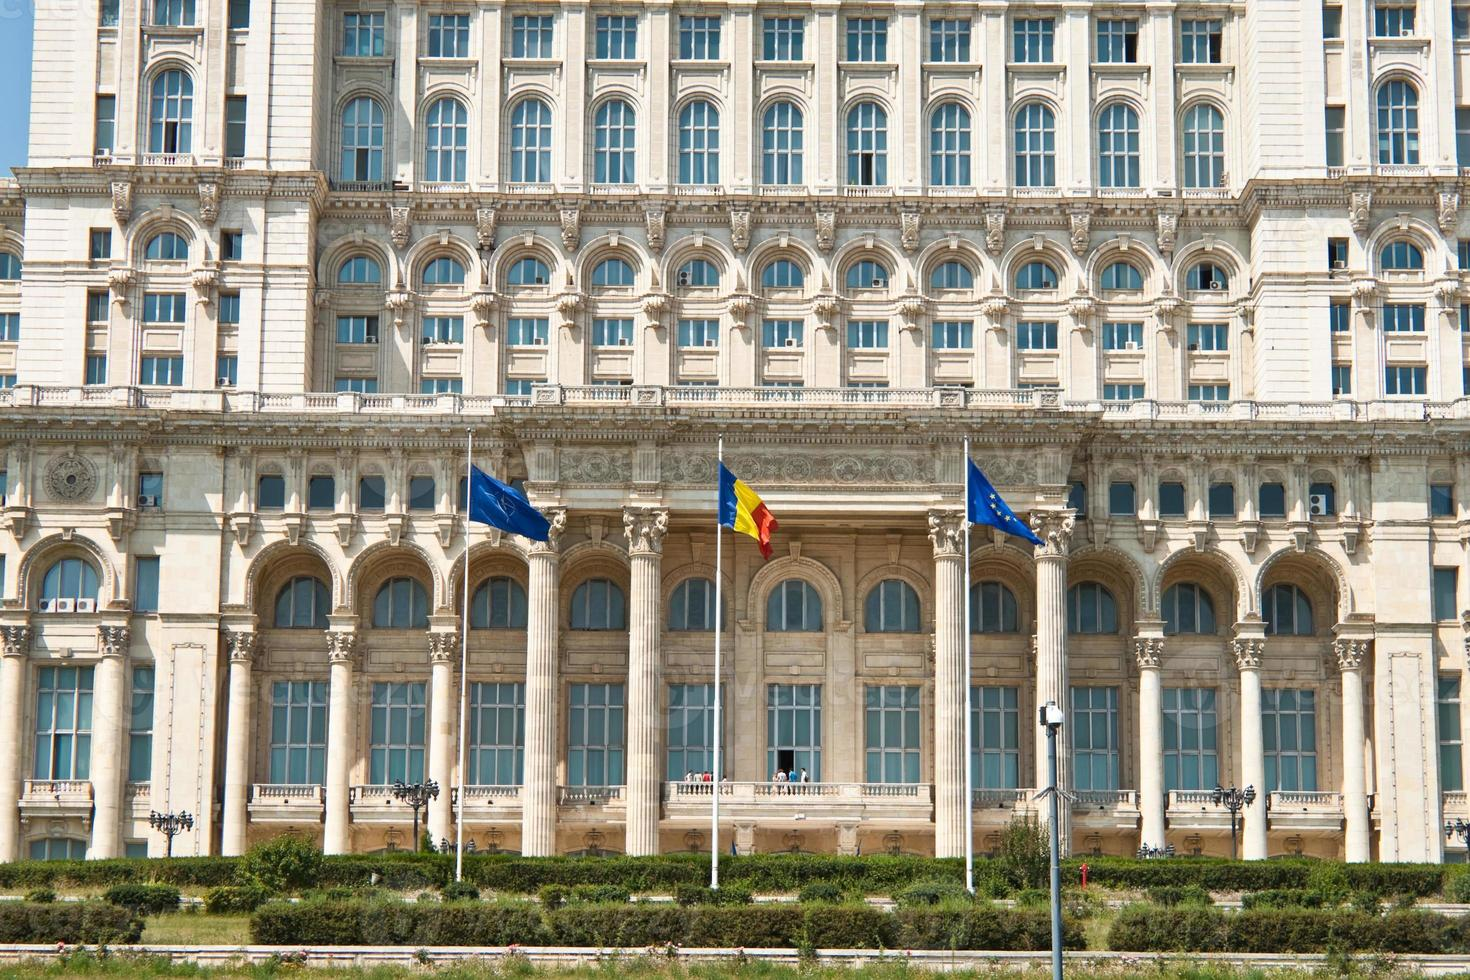 Palace Of The Parliament front view, Bucharest Romania photo